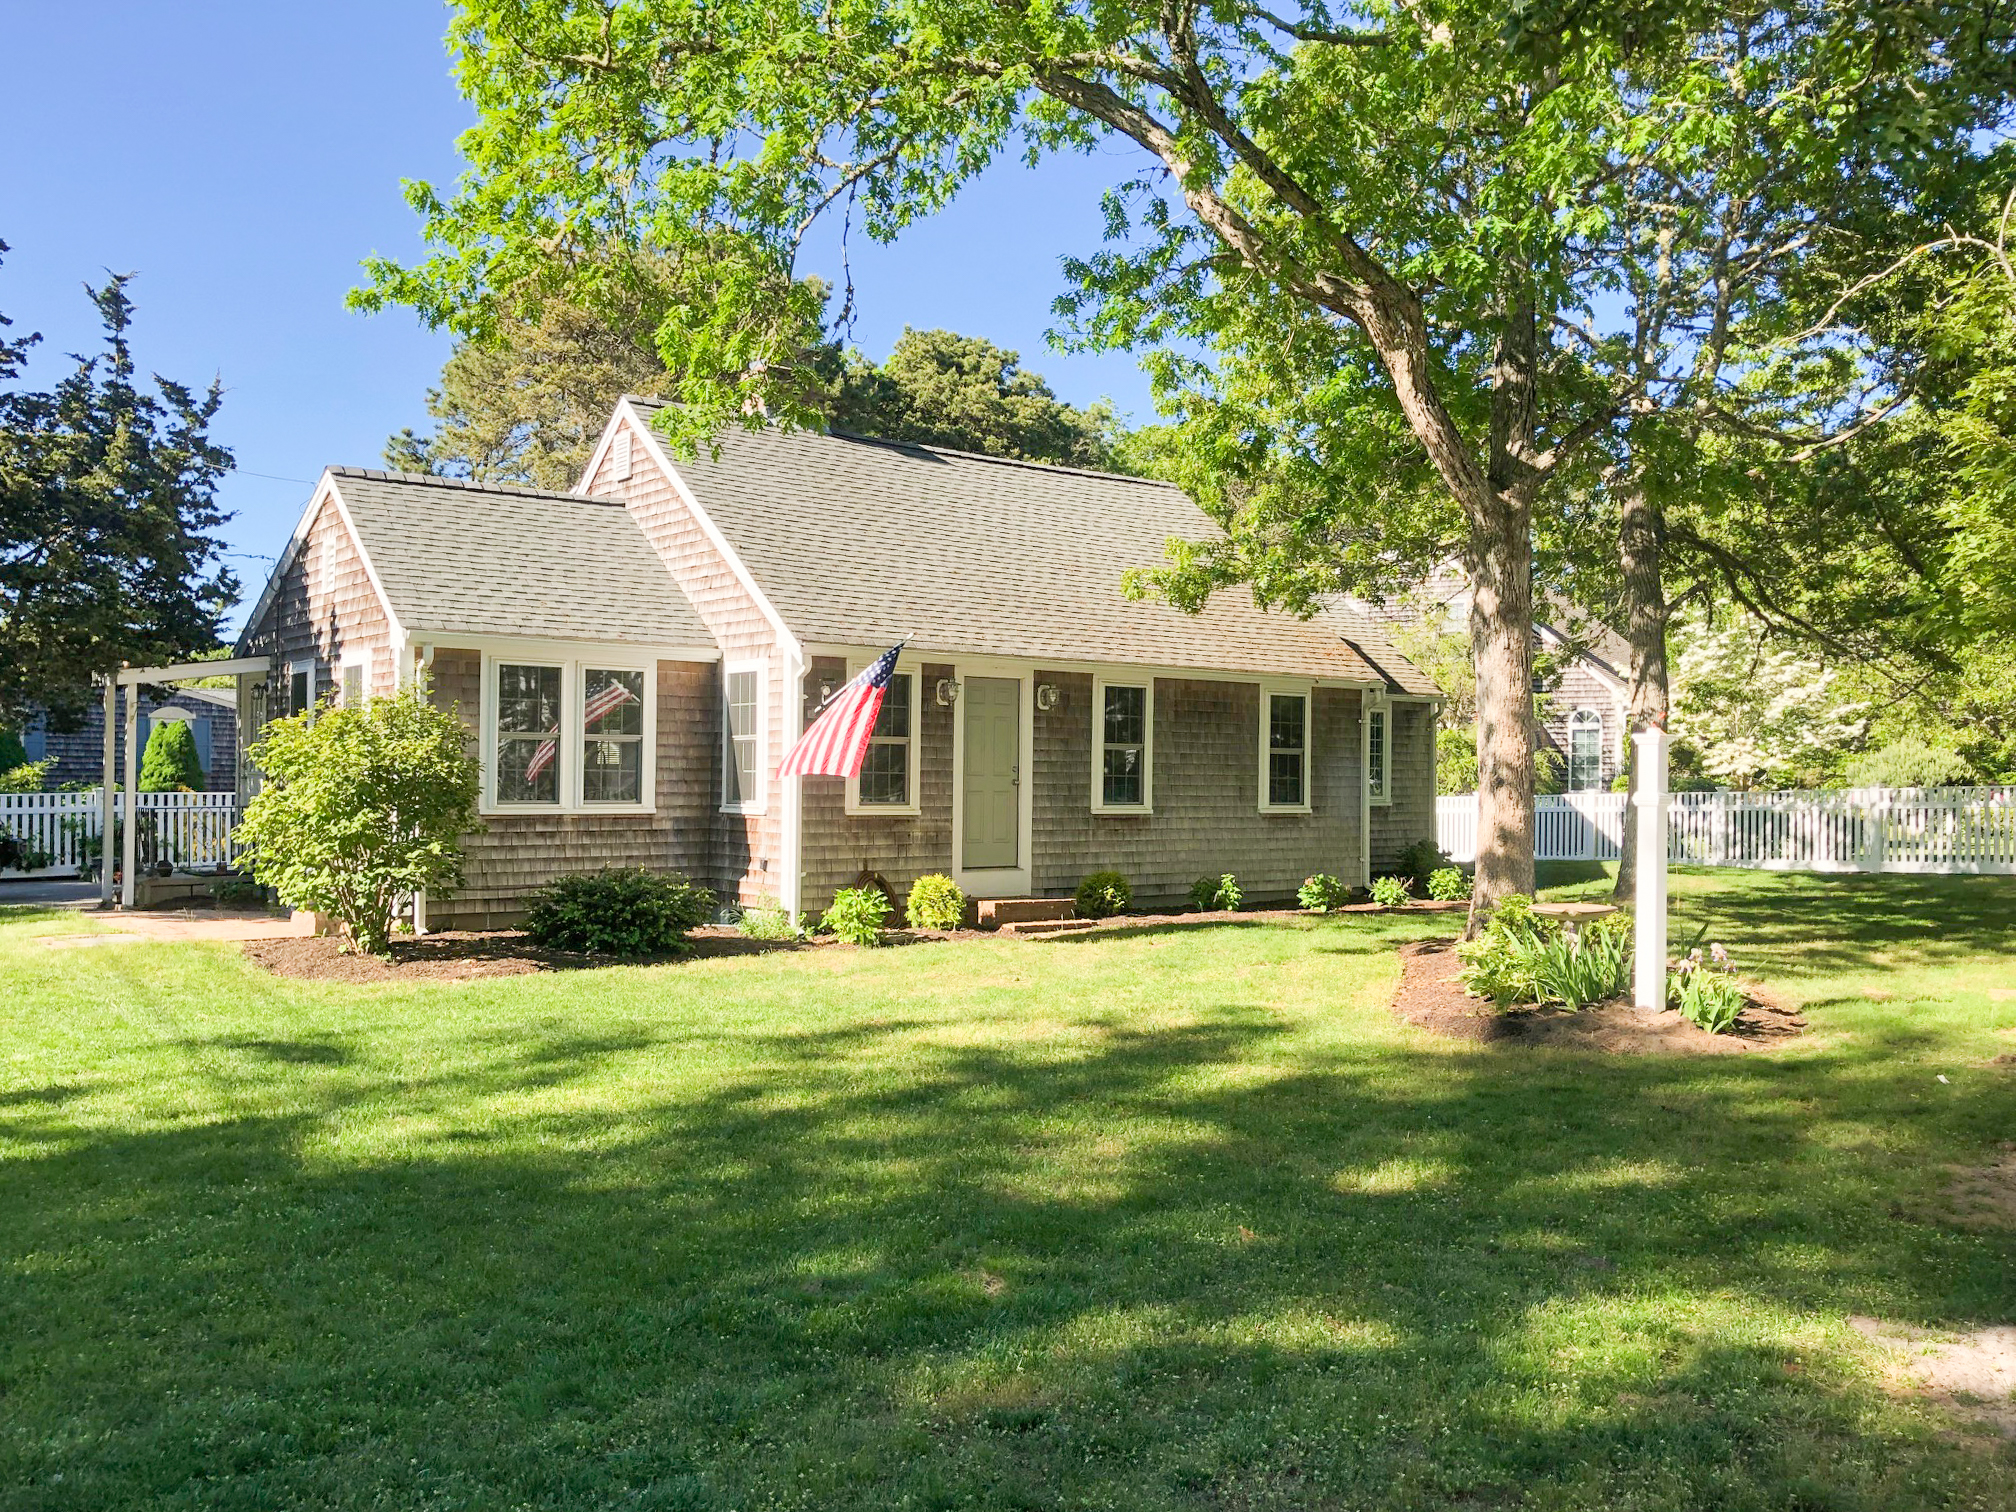 Harwich Port MA Vacation Rental Welcome to Harwich